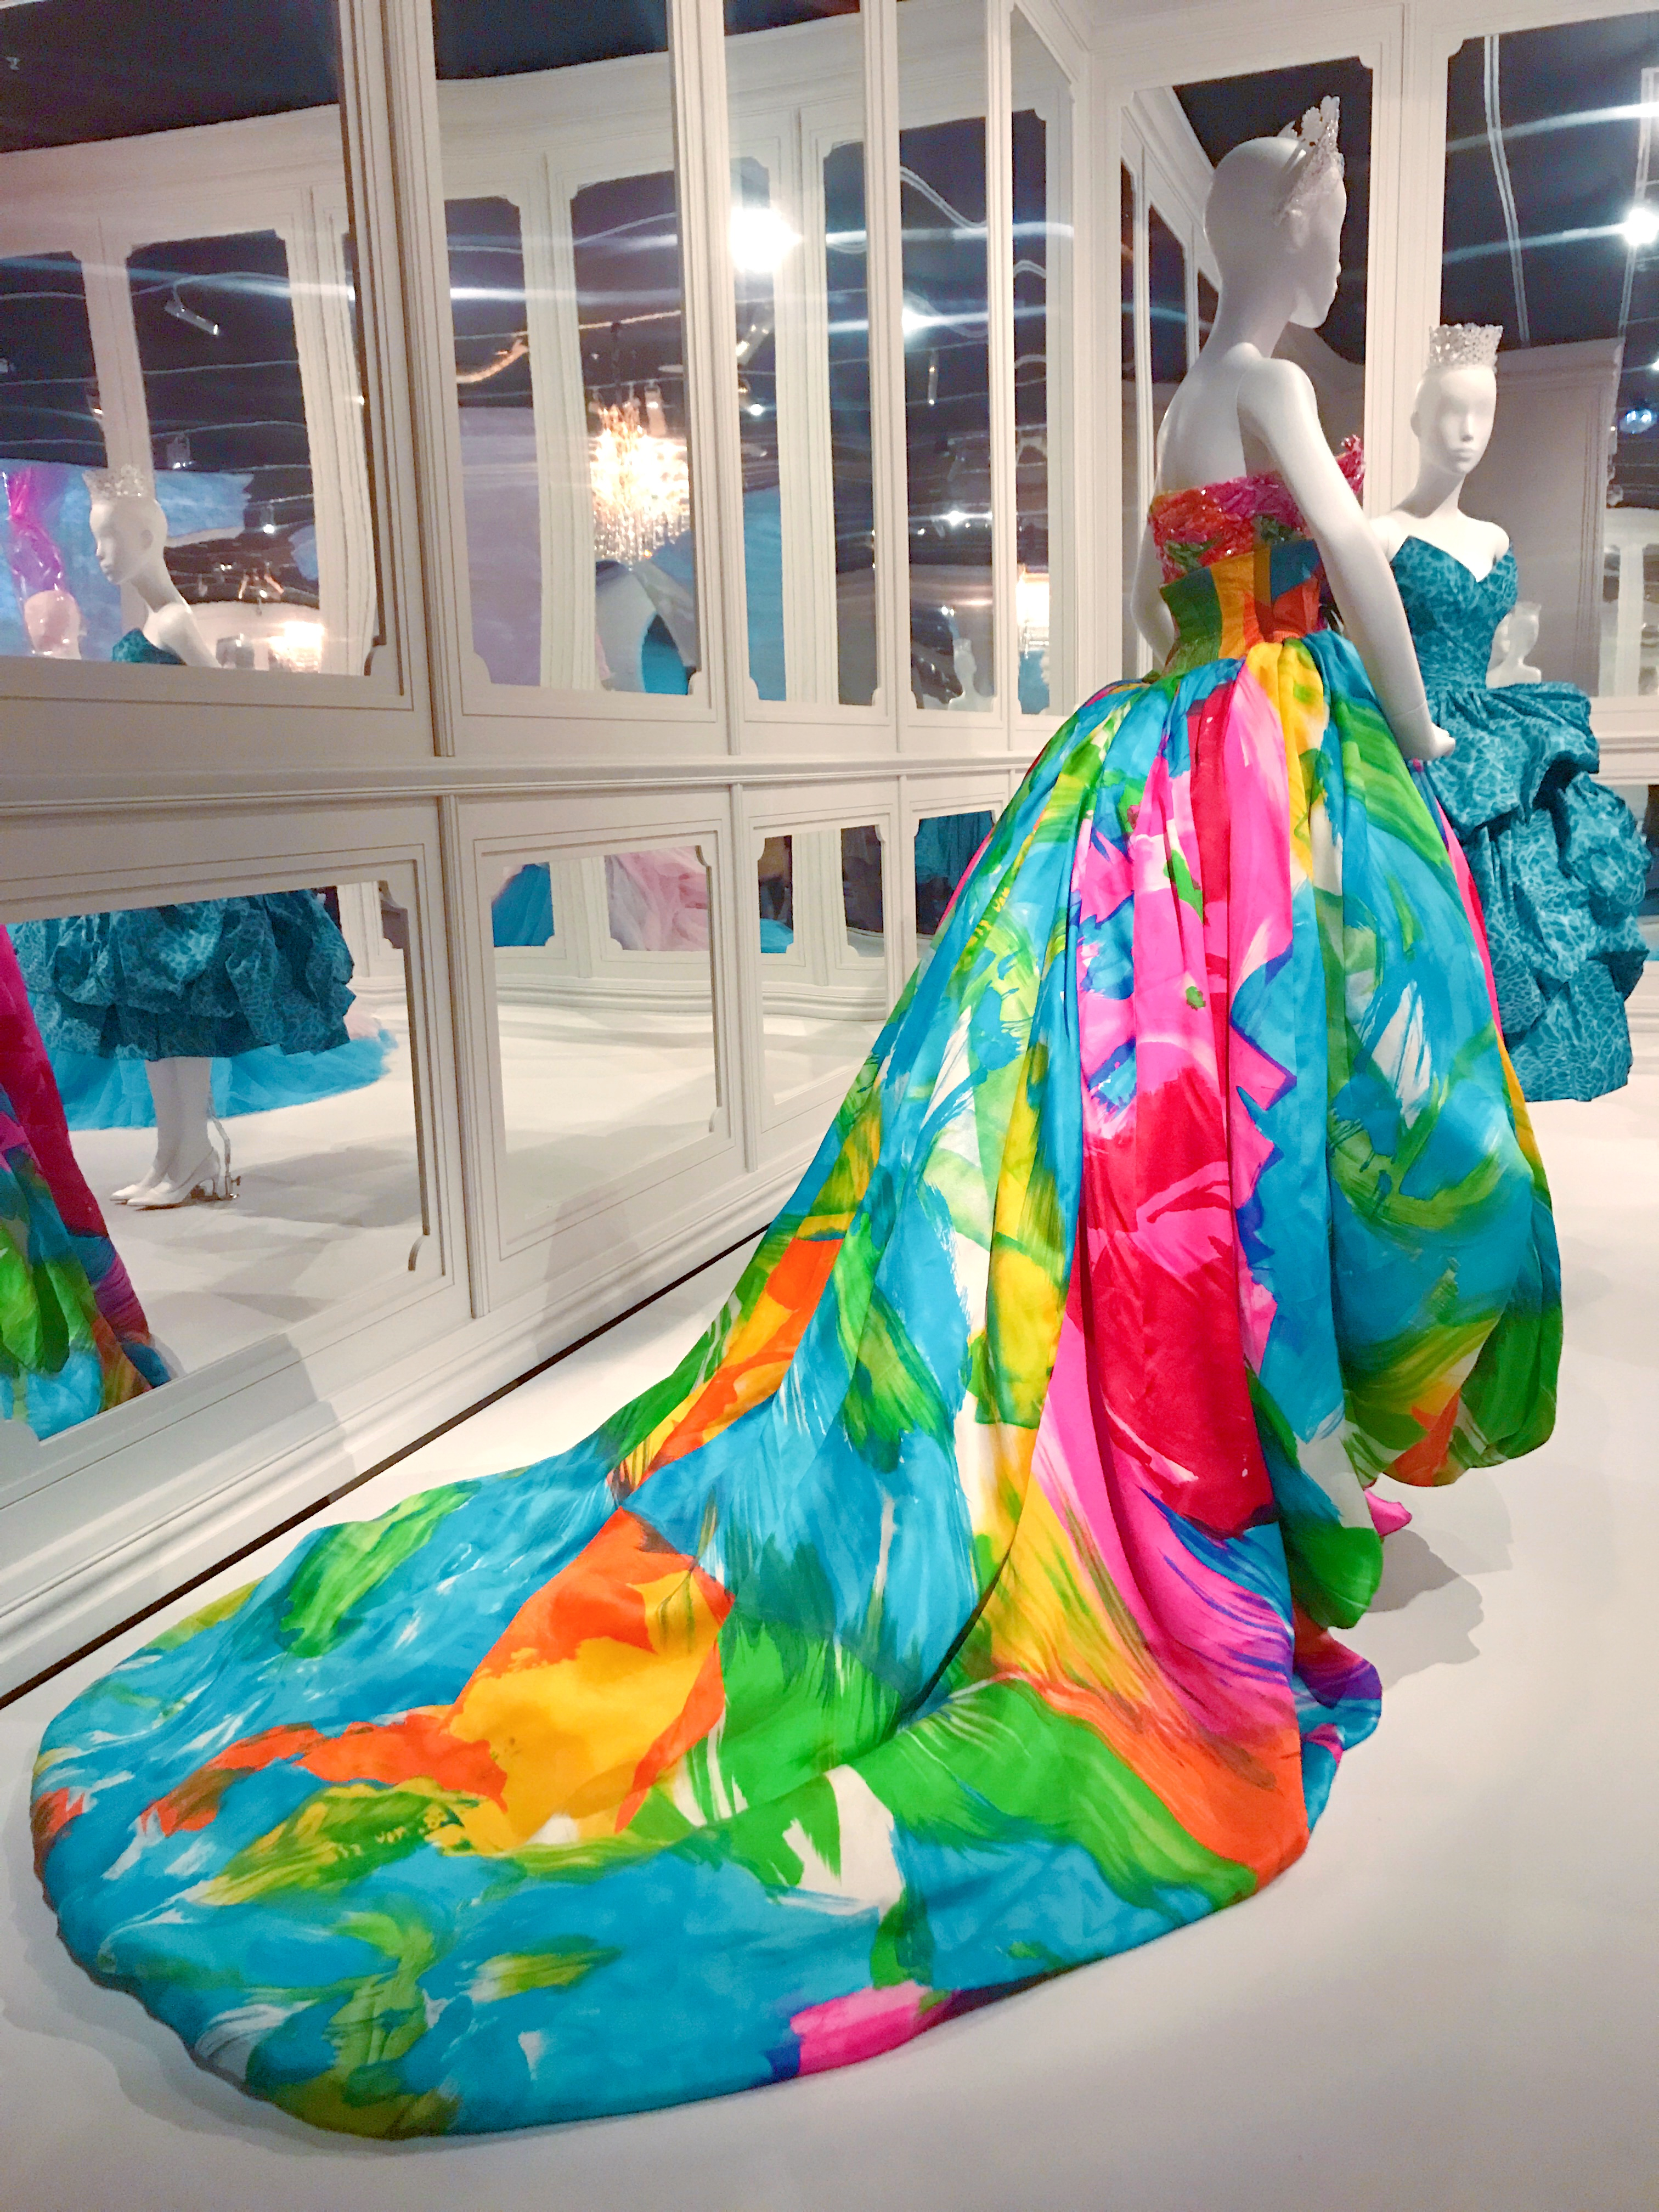 'The House of Dior' Exhibition   National Gallery of Victoria